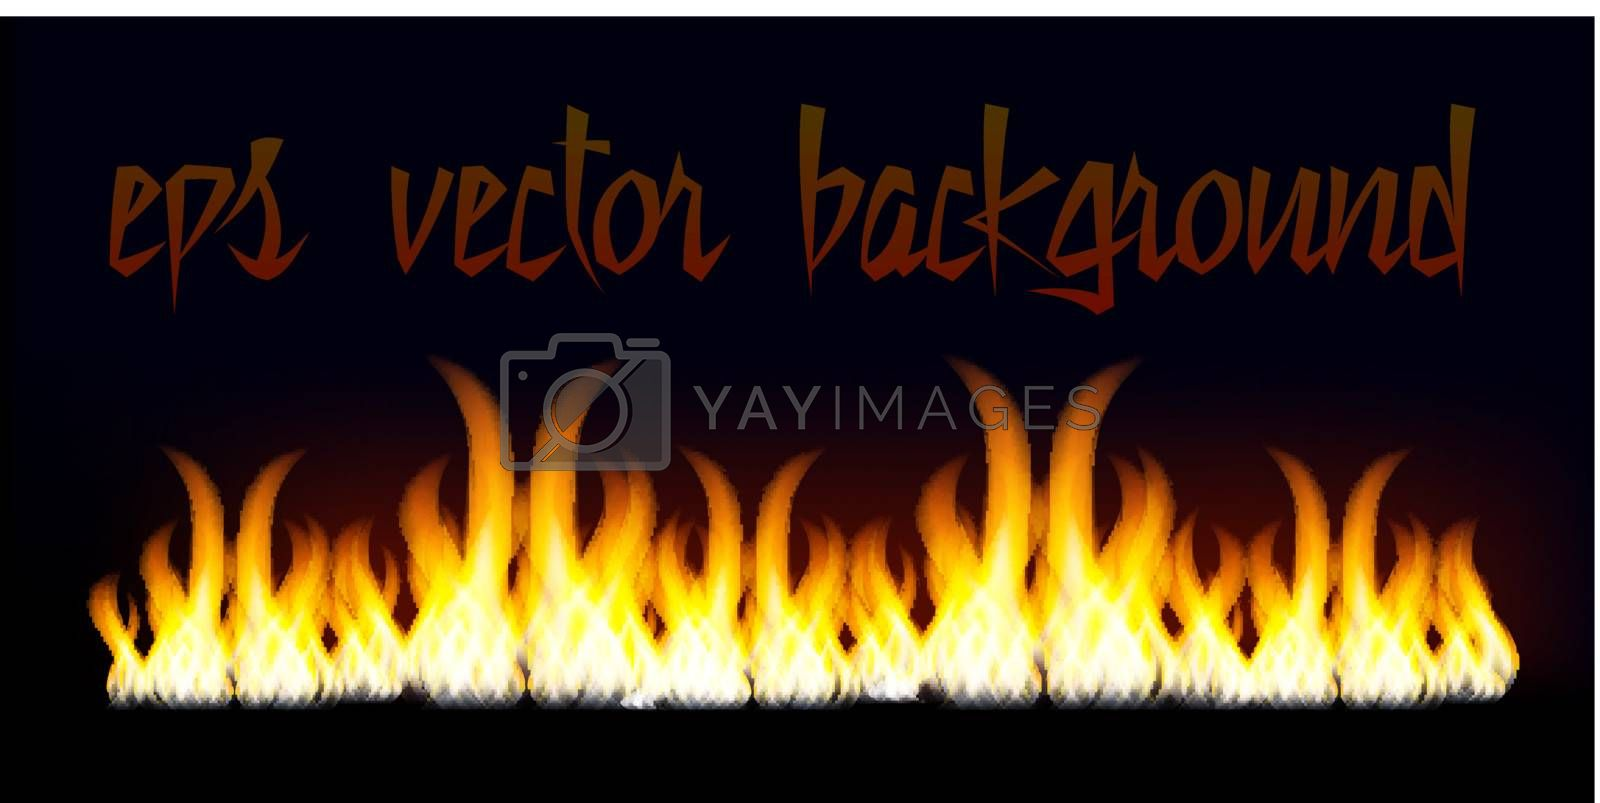 Burn flame fire vector background isolated on black background